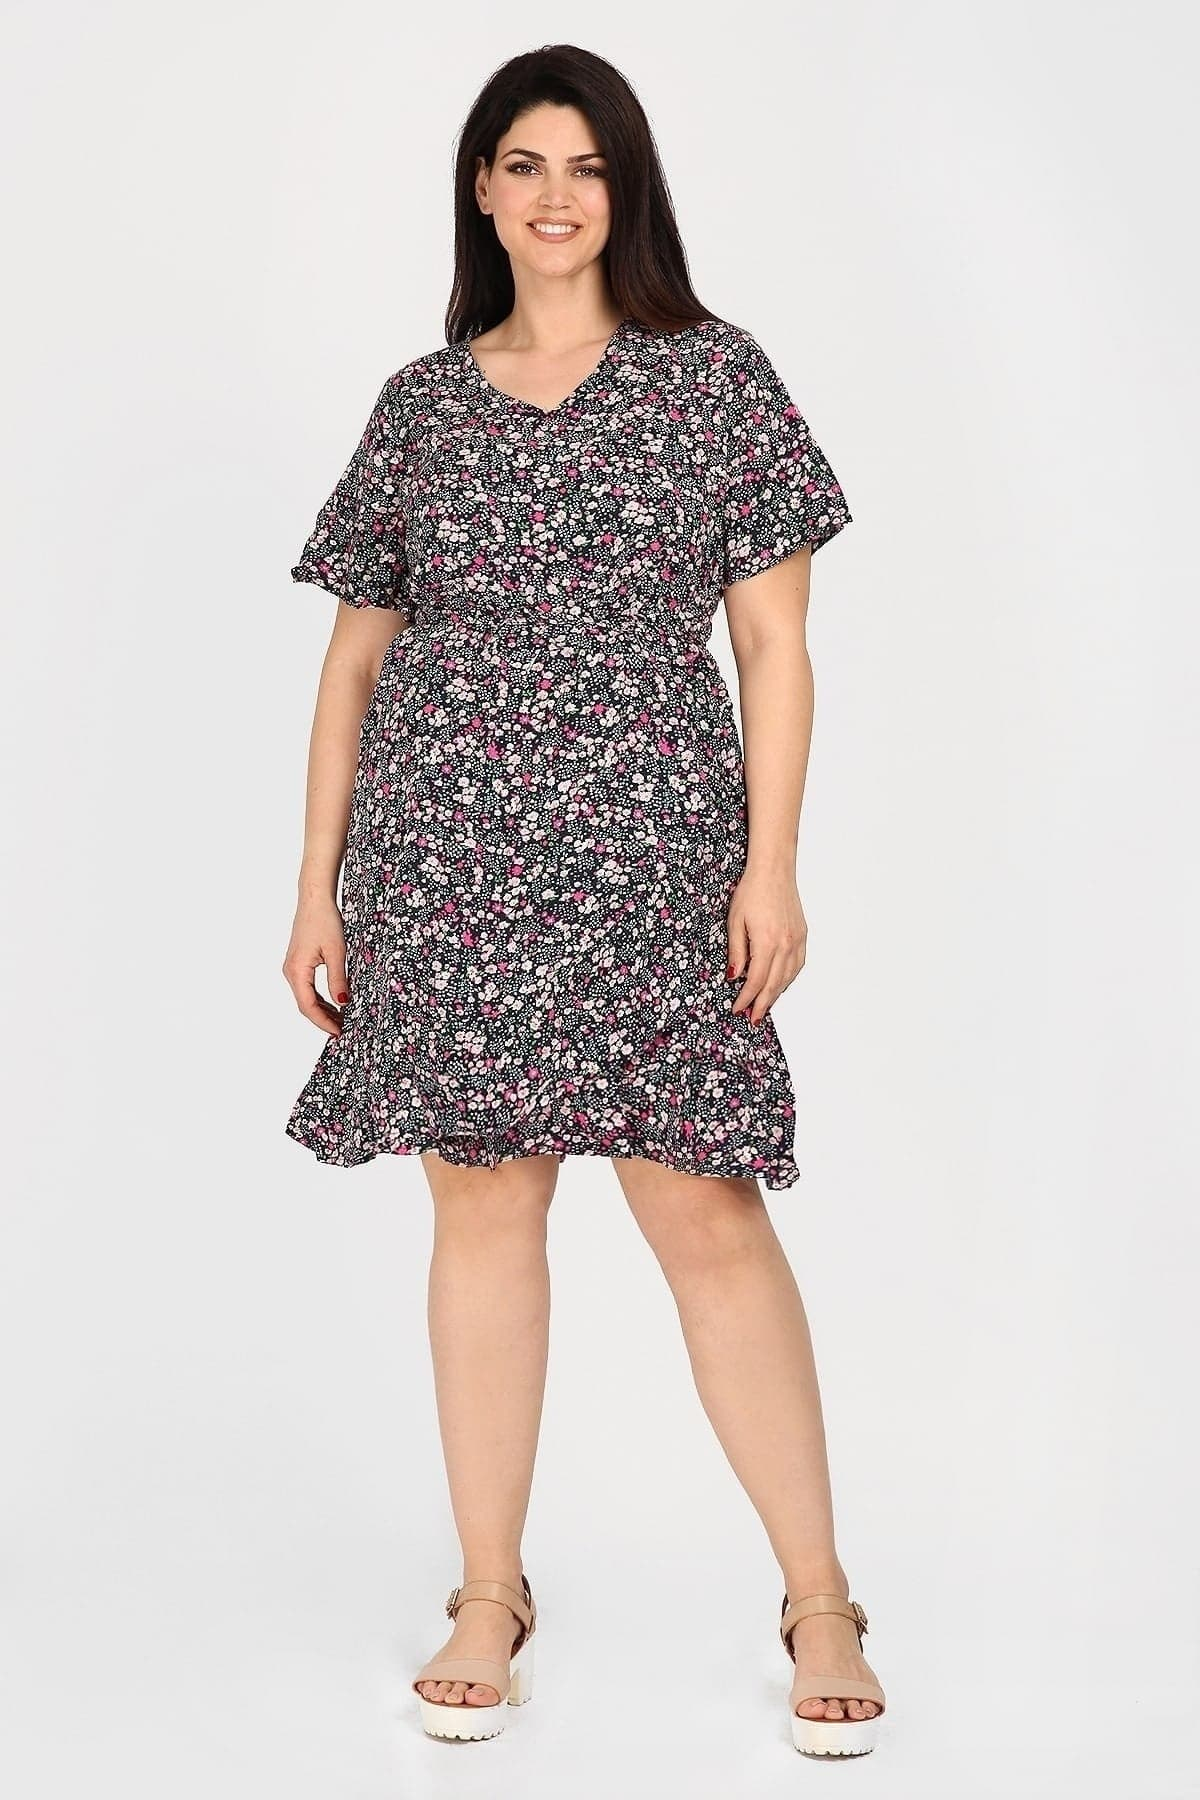 Midi floral dress with ruffles